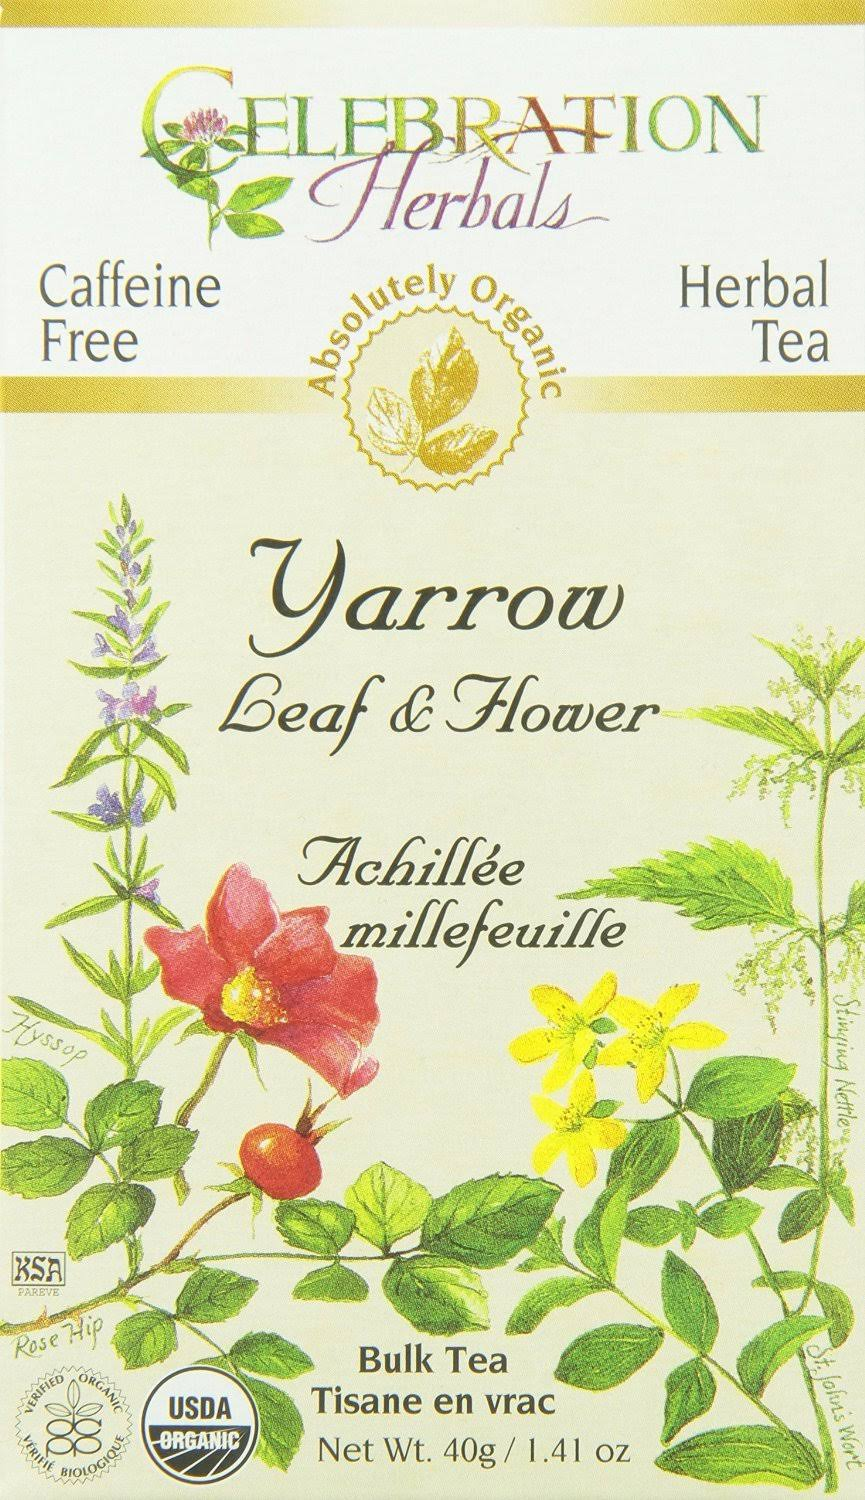 Celebration Herbals Organic Tea - Yarrow Leaf Flower, 40g